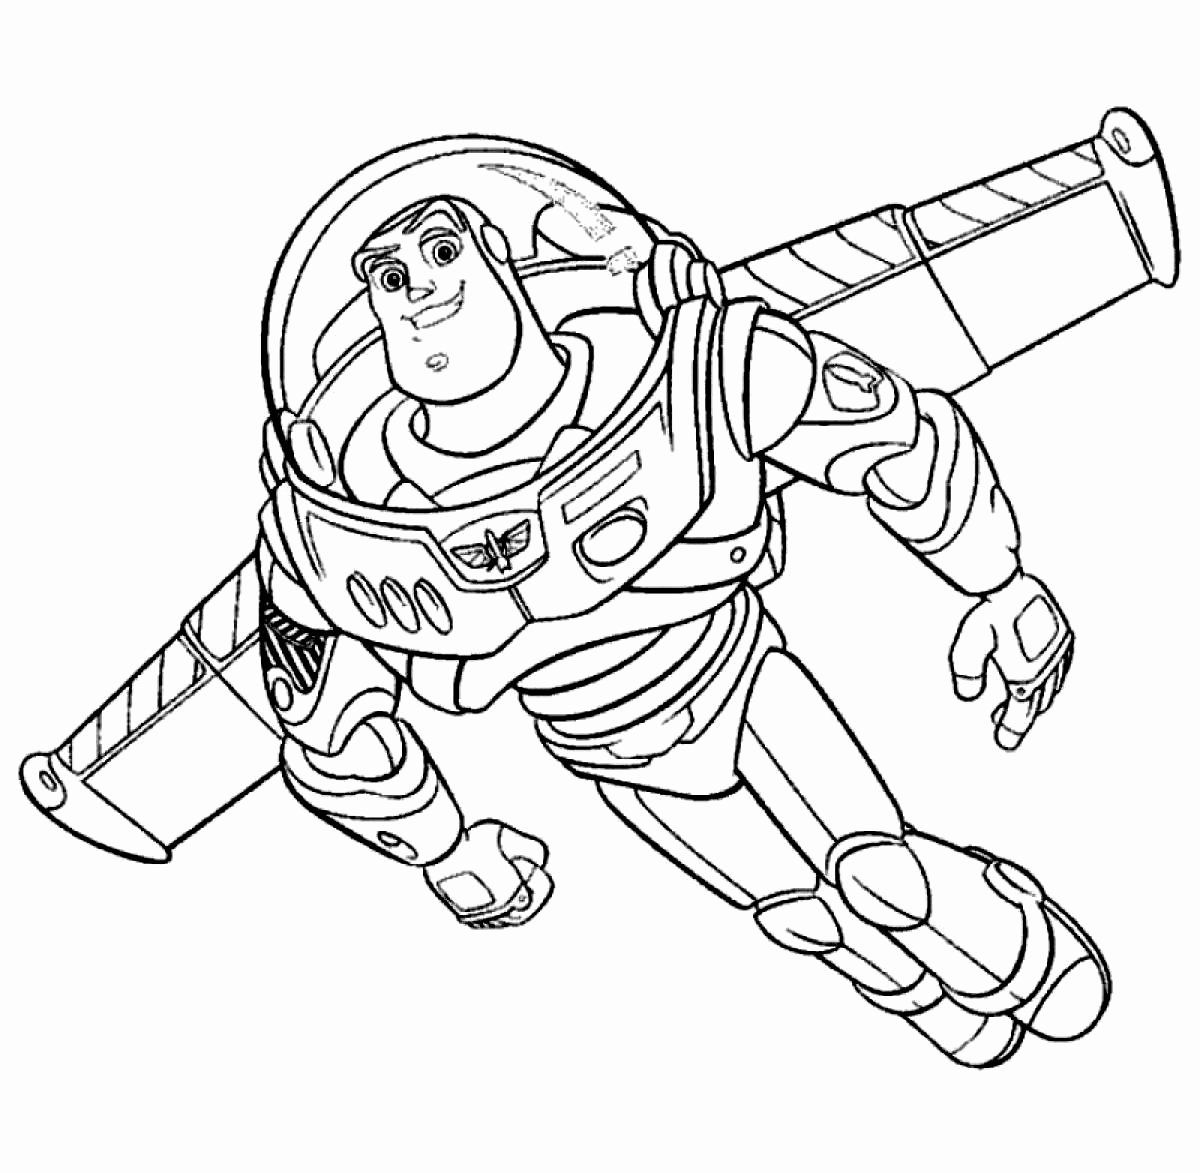 Coloring Book Toy Story Elegant Free Printable Buzz Lightyear Coloring Pages For Kids Toy Story Coloring Pages Disney Coloring Pages Cartoon Coloring Pages